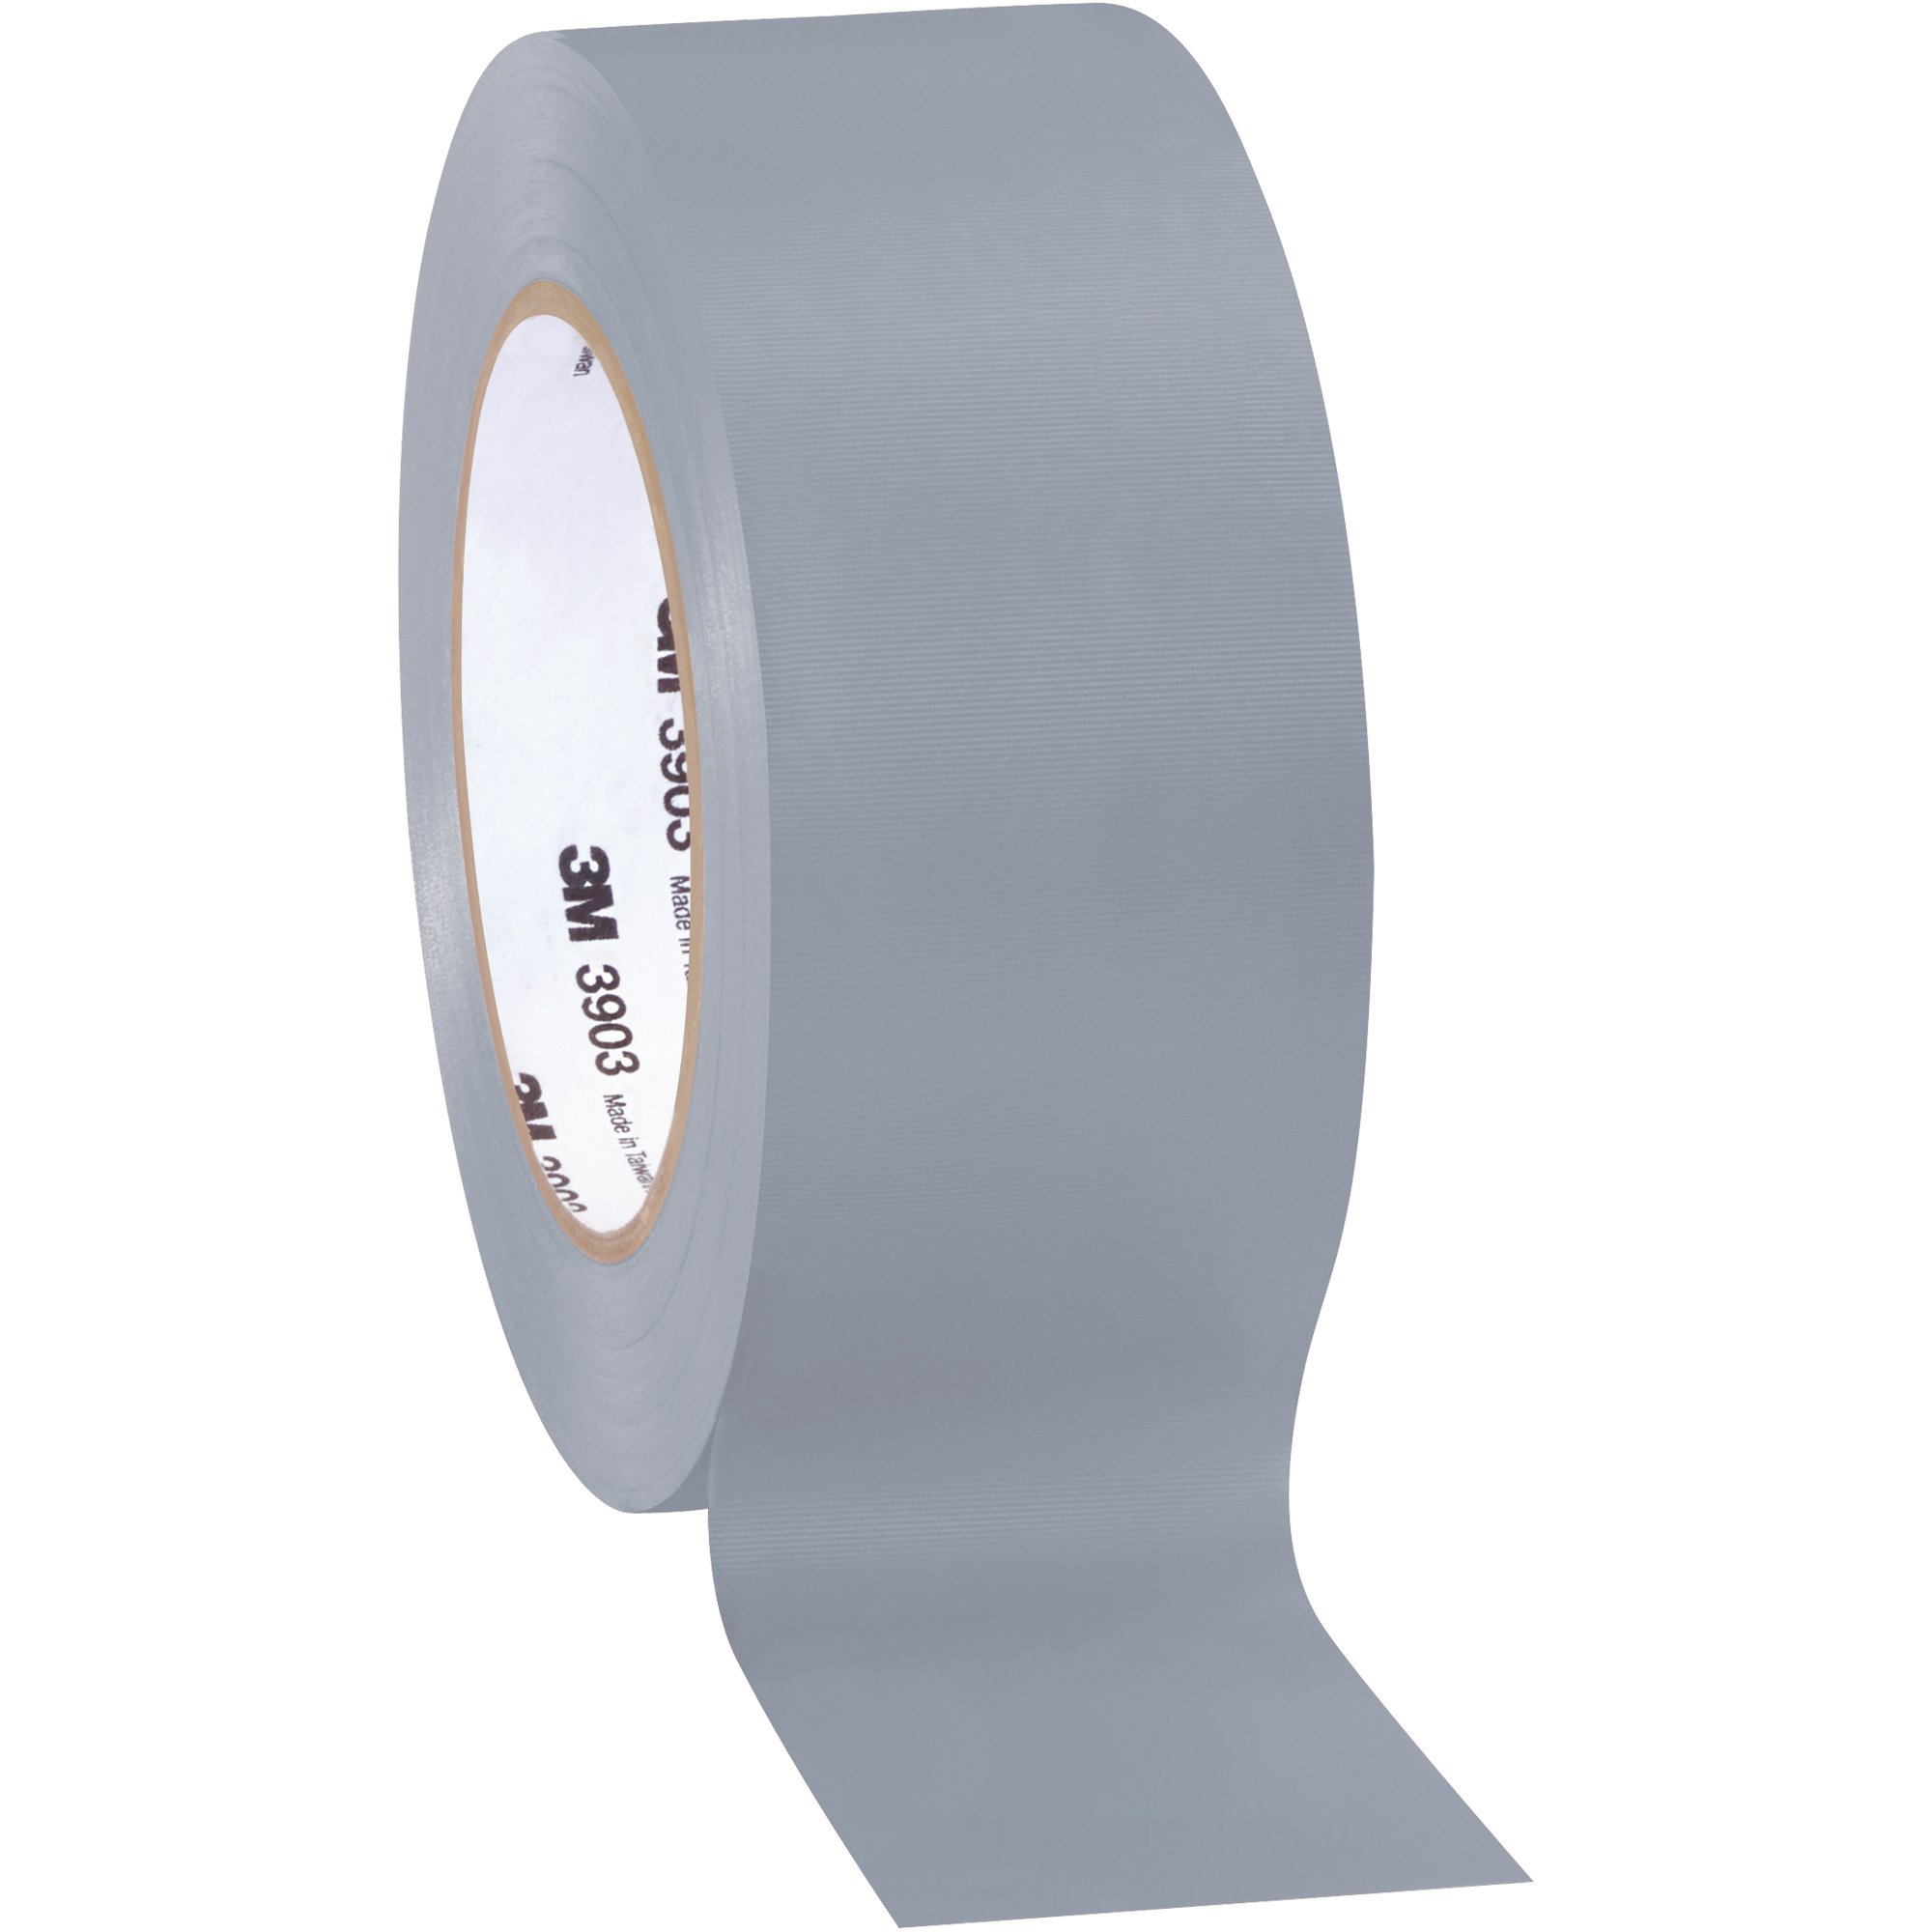 Top Pack Supply 3M 3903 Duct Tape, 6.3 Mil, 2'' x 50 yds Gray (Case of 3)